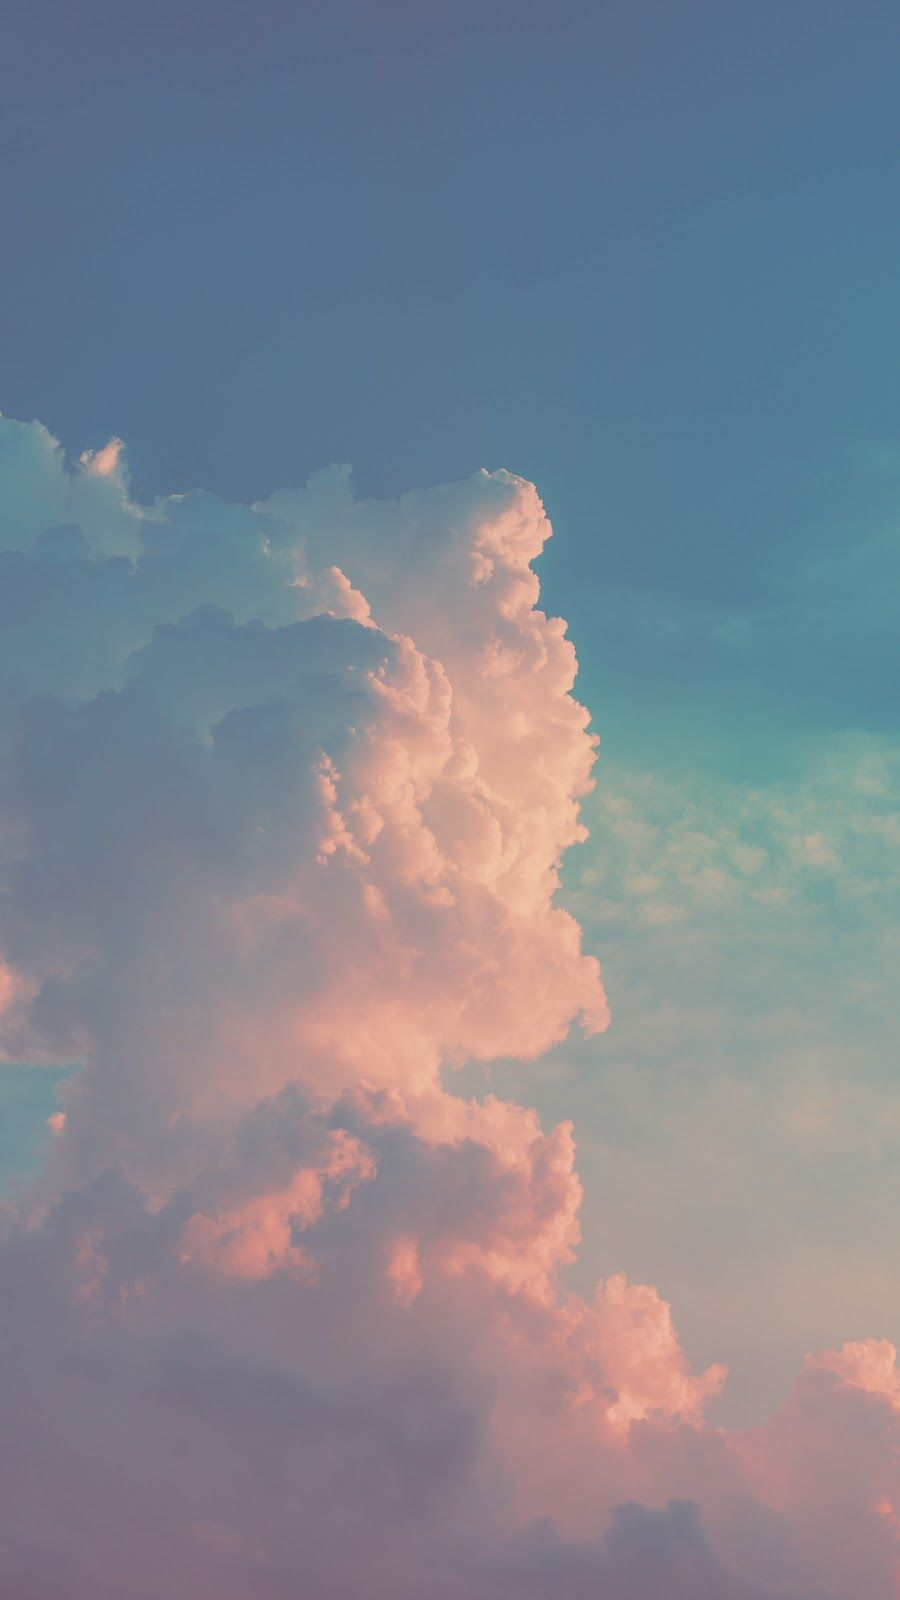 Cloud In The Sky Wallpapers Cloud Wallpaper Aesthetic Iphone